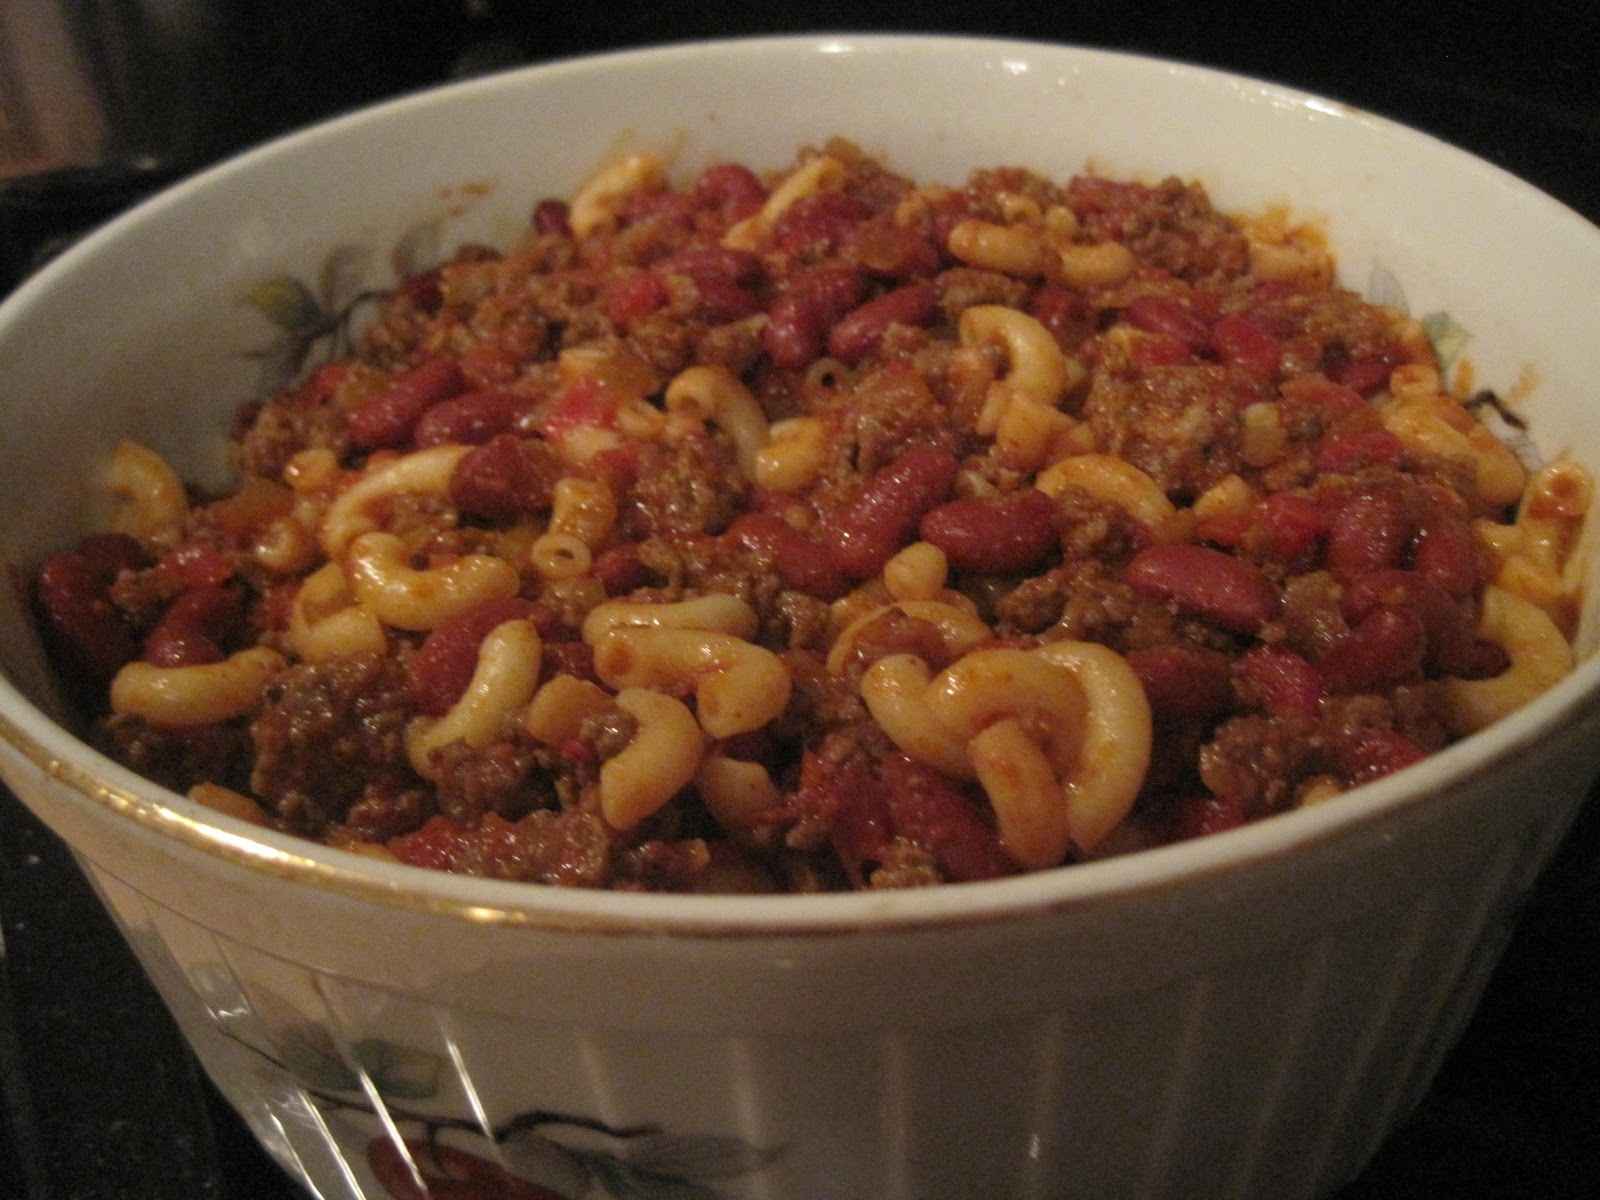 Recipes Re-Mixed: Chili Mac